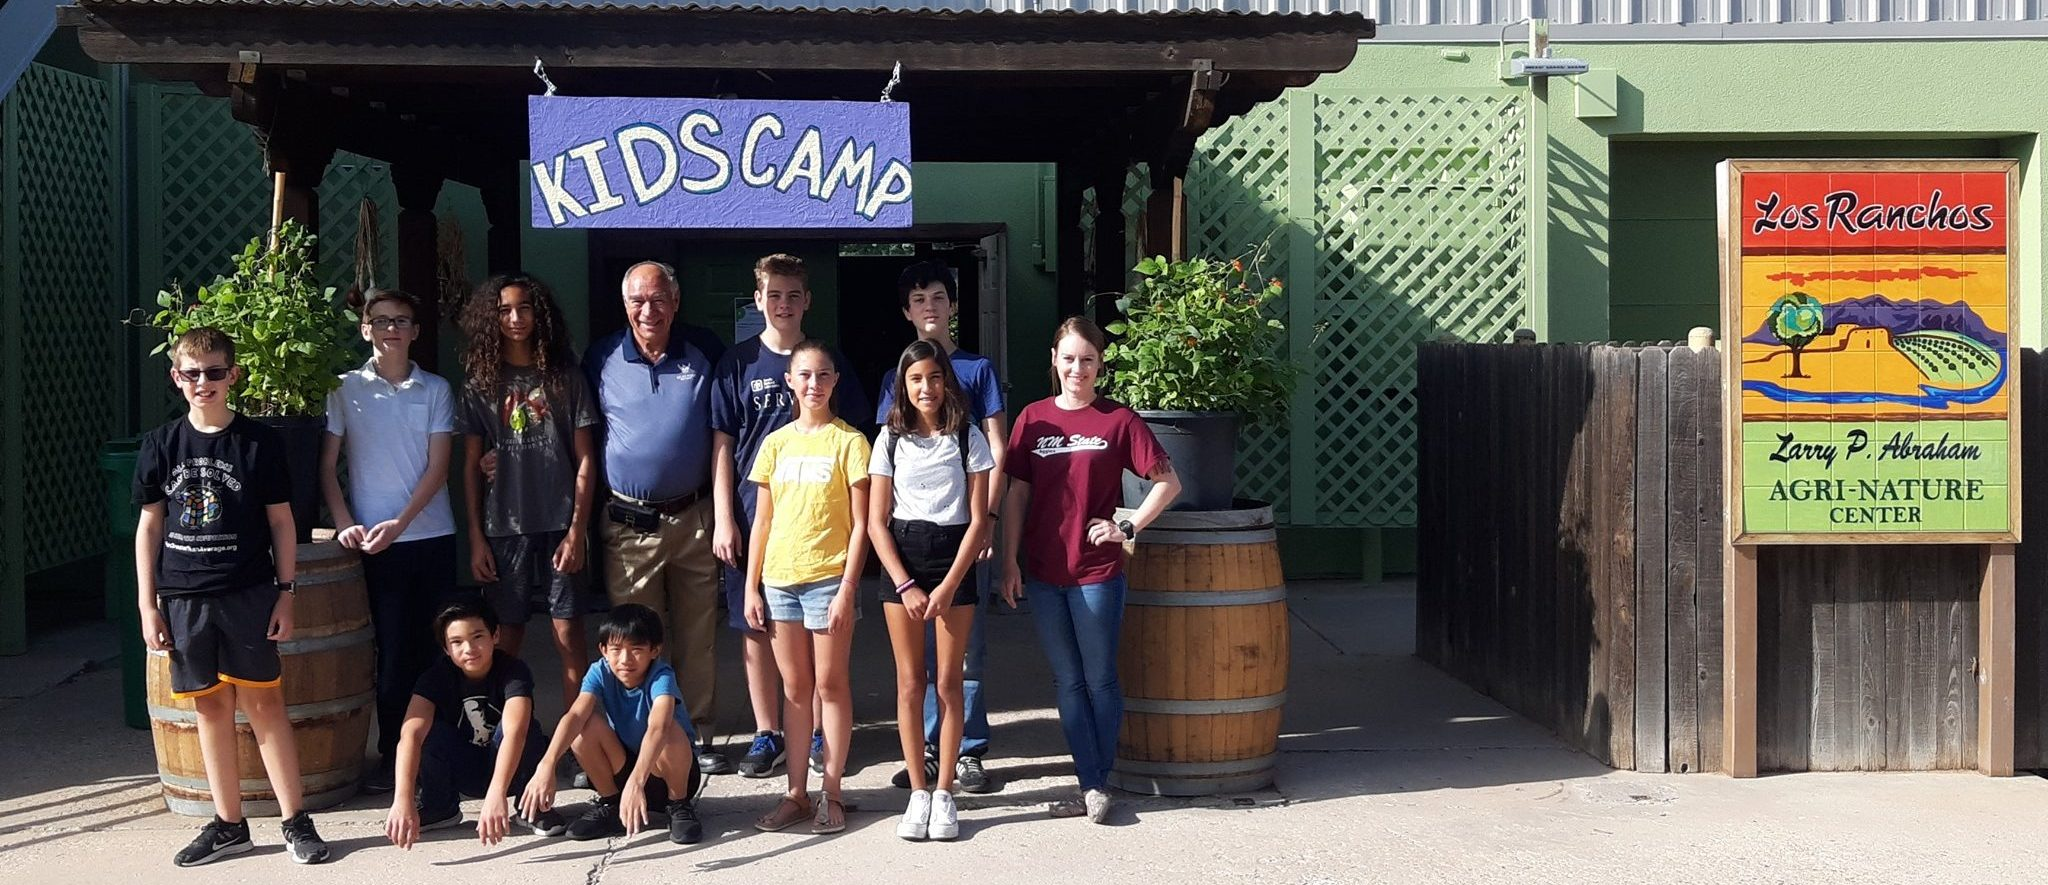 Kid's Camp at the Agra Nature Center